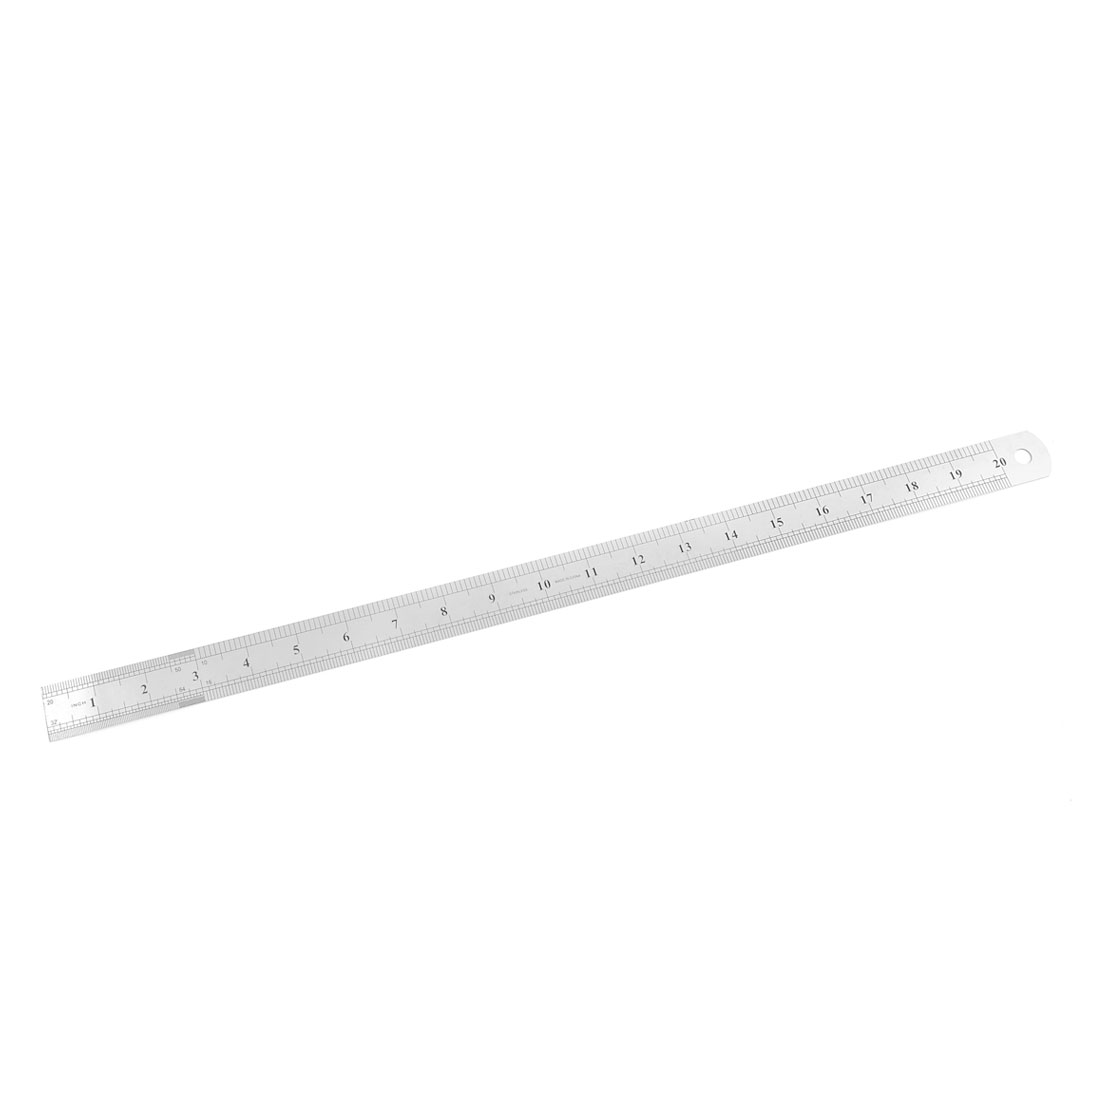 53cm Long 0-50cm Range Measurement Stainless Steel Metal Straight Ruler